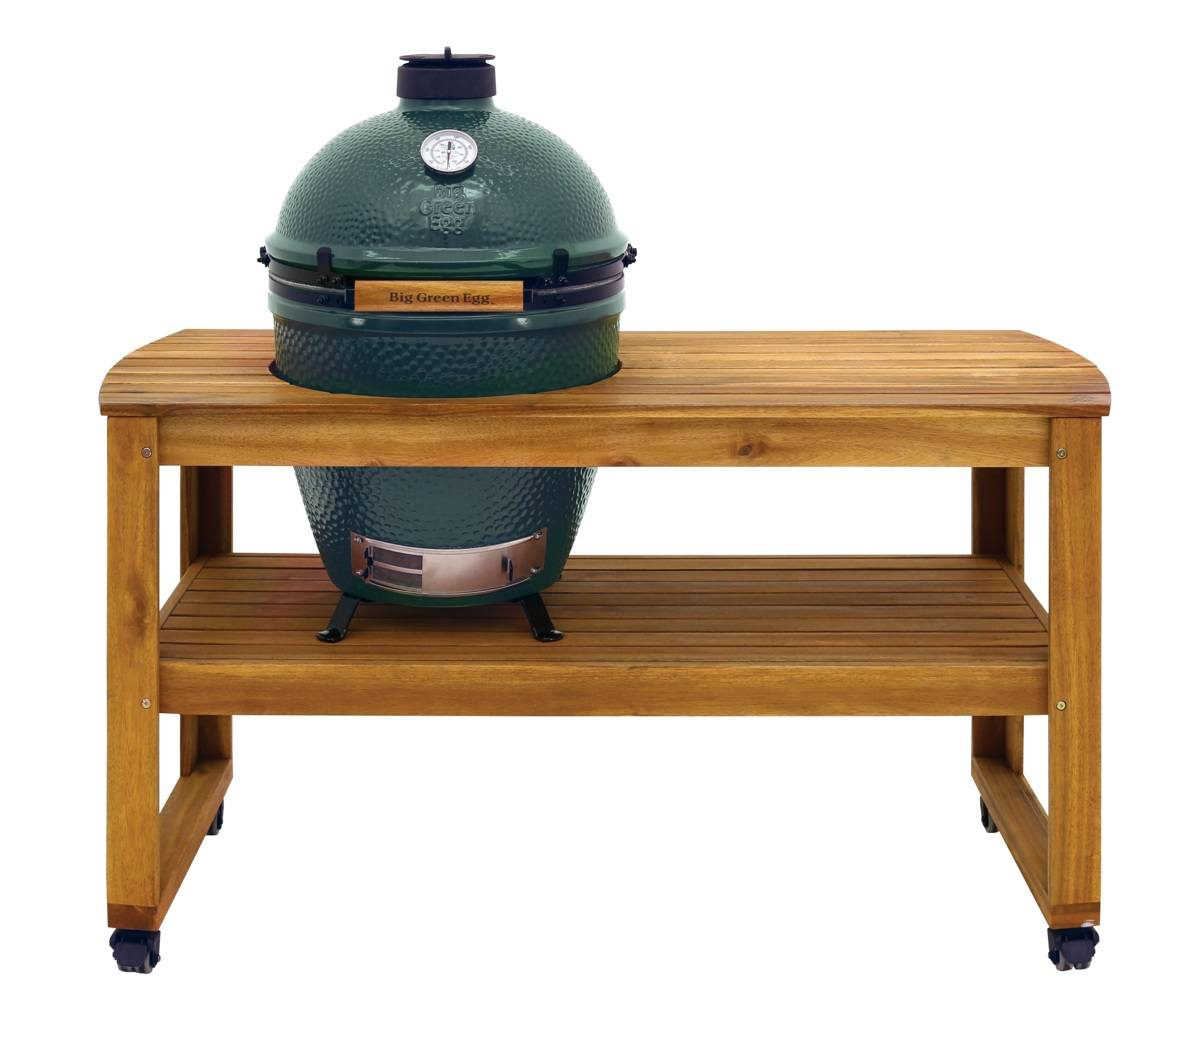 Acacia tafel + Big Green Egg large